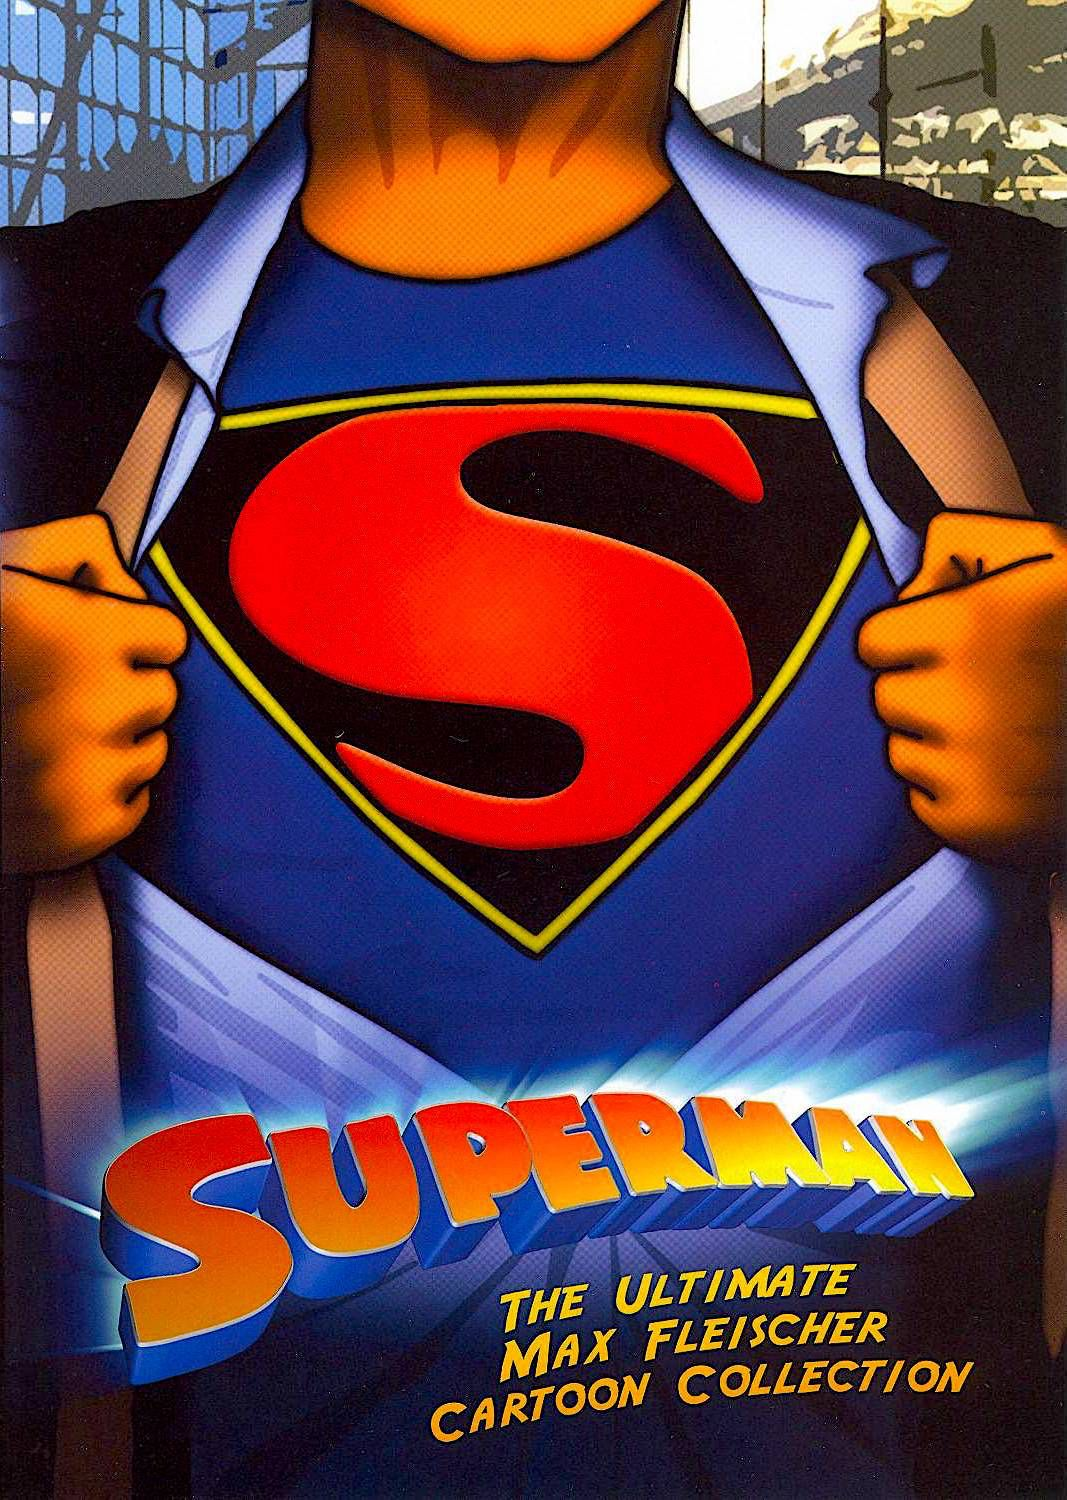 SUPERMAN THE ULTIMATE MAX FLEISCHER CARTOON COLLECTION DVD